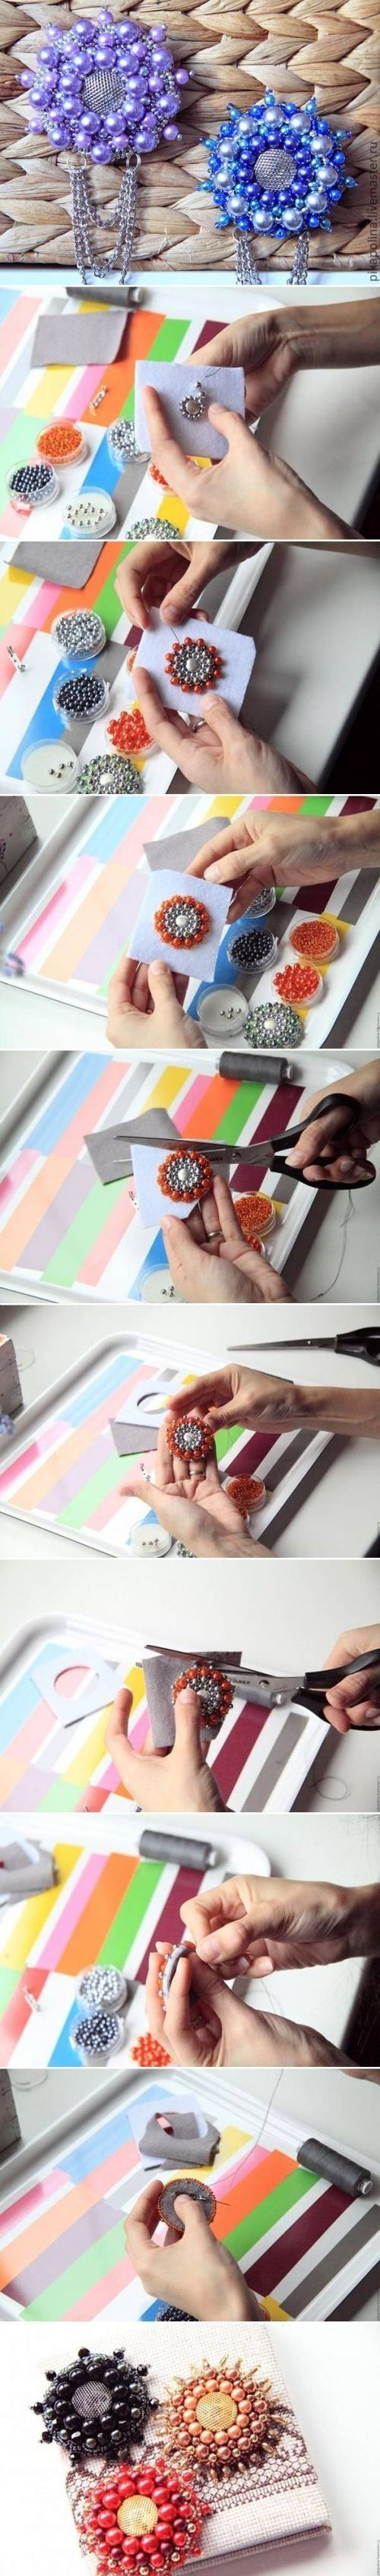 DIY Bead Flower Broach --great idea for a bracelet focal